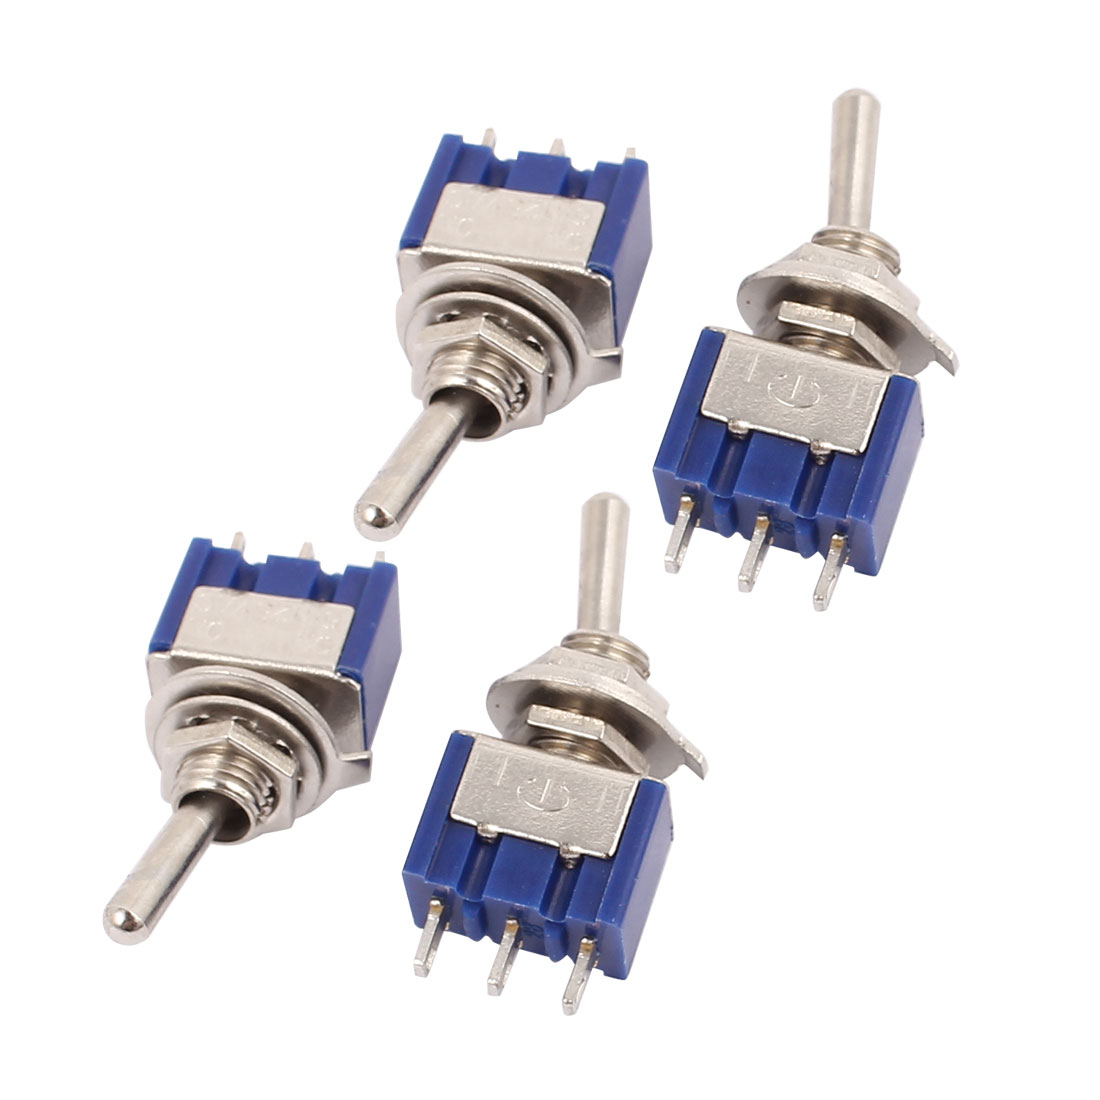 4 Pcs AC 125V 3A ON/ON SMTS-102 2 Position 3 Pins 1P2T SPDT Mini Toggle Switch